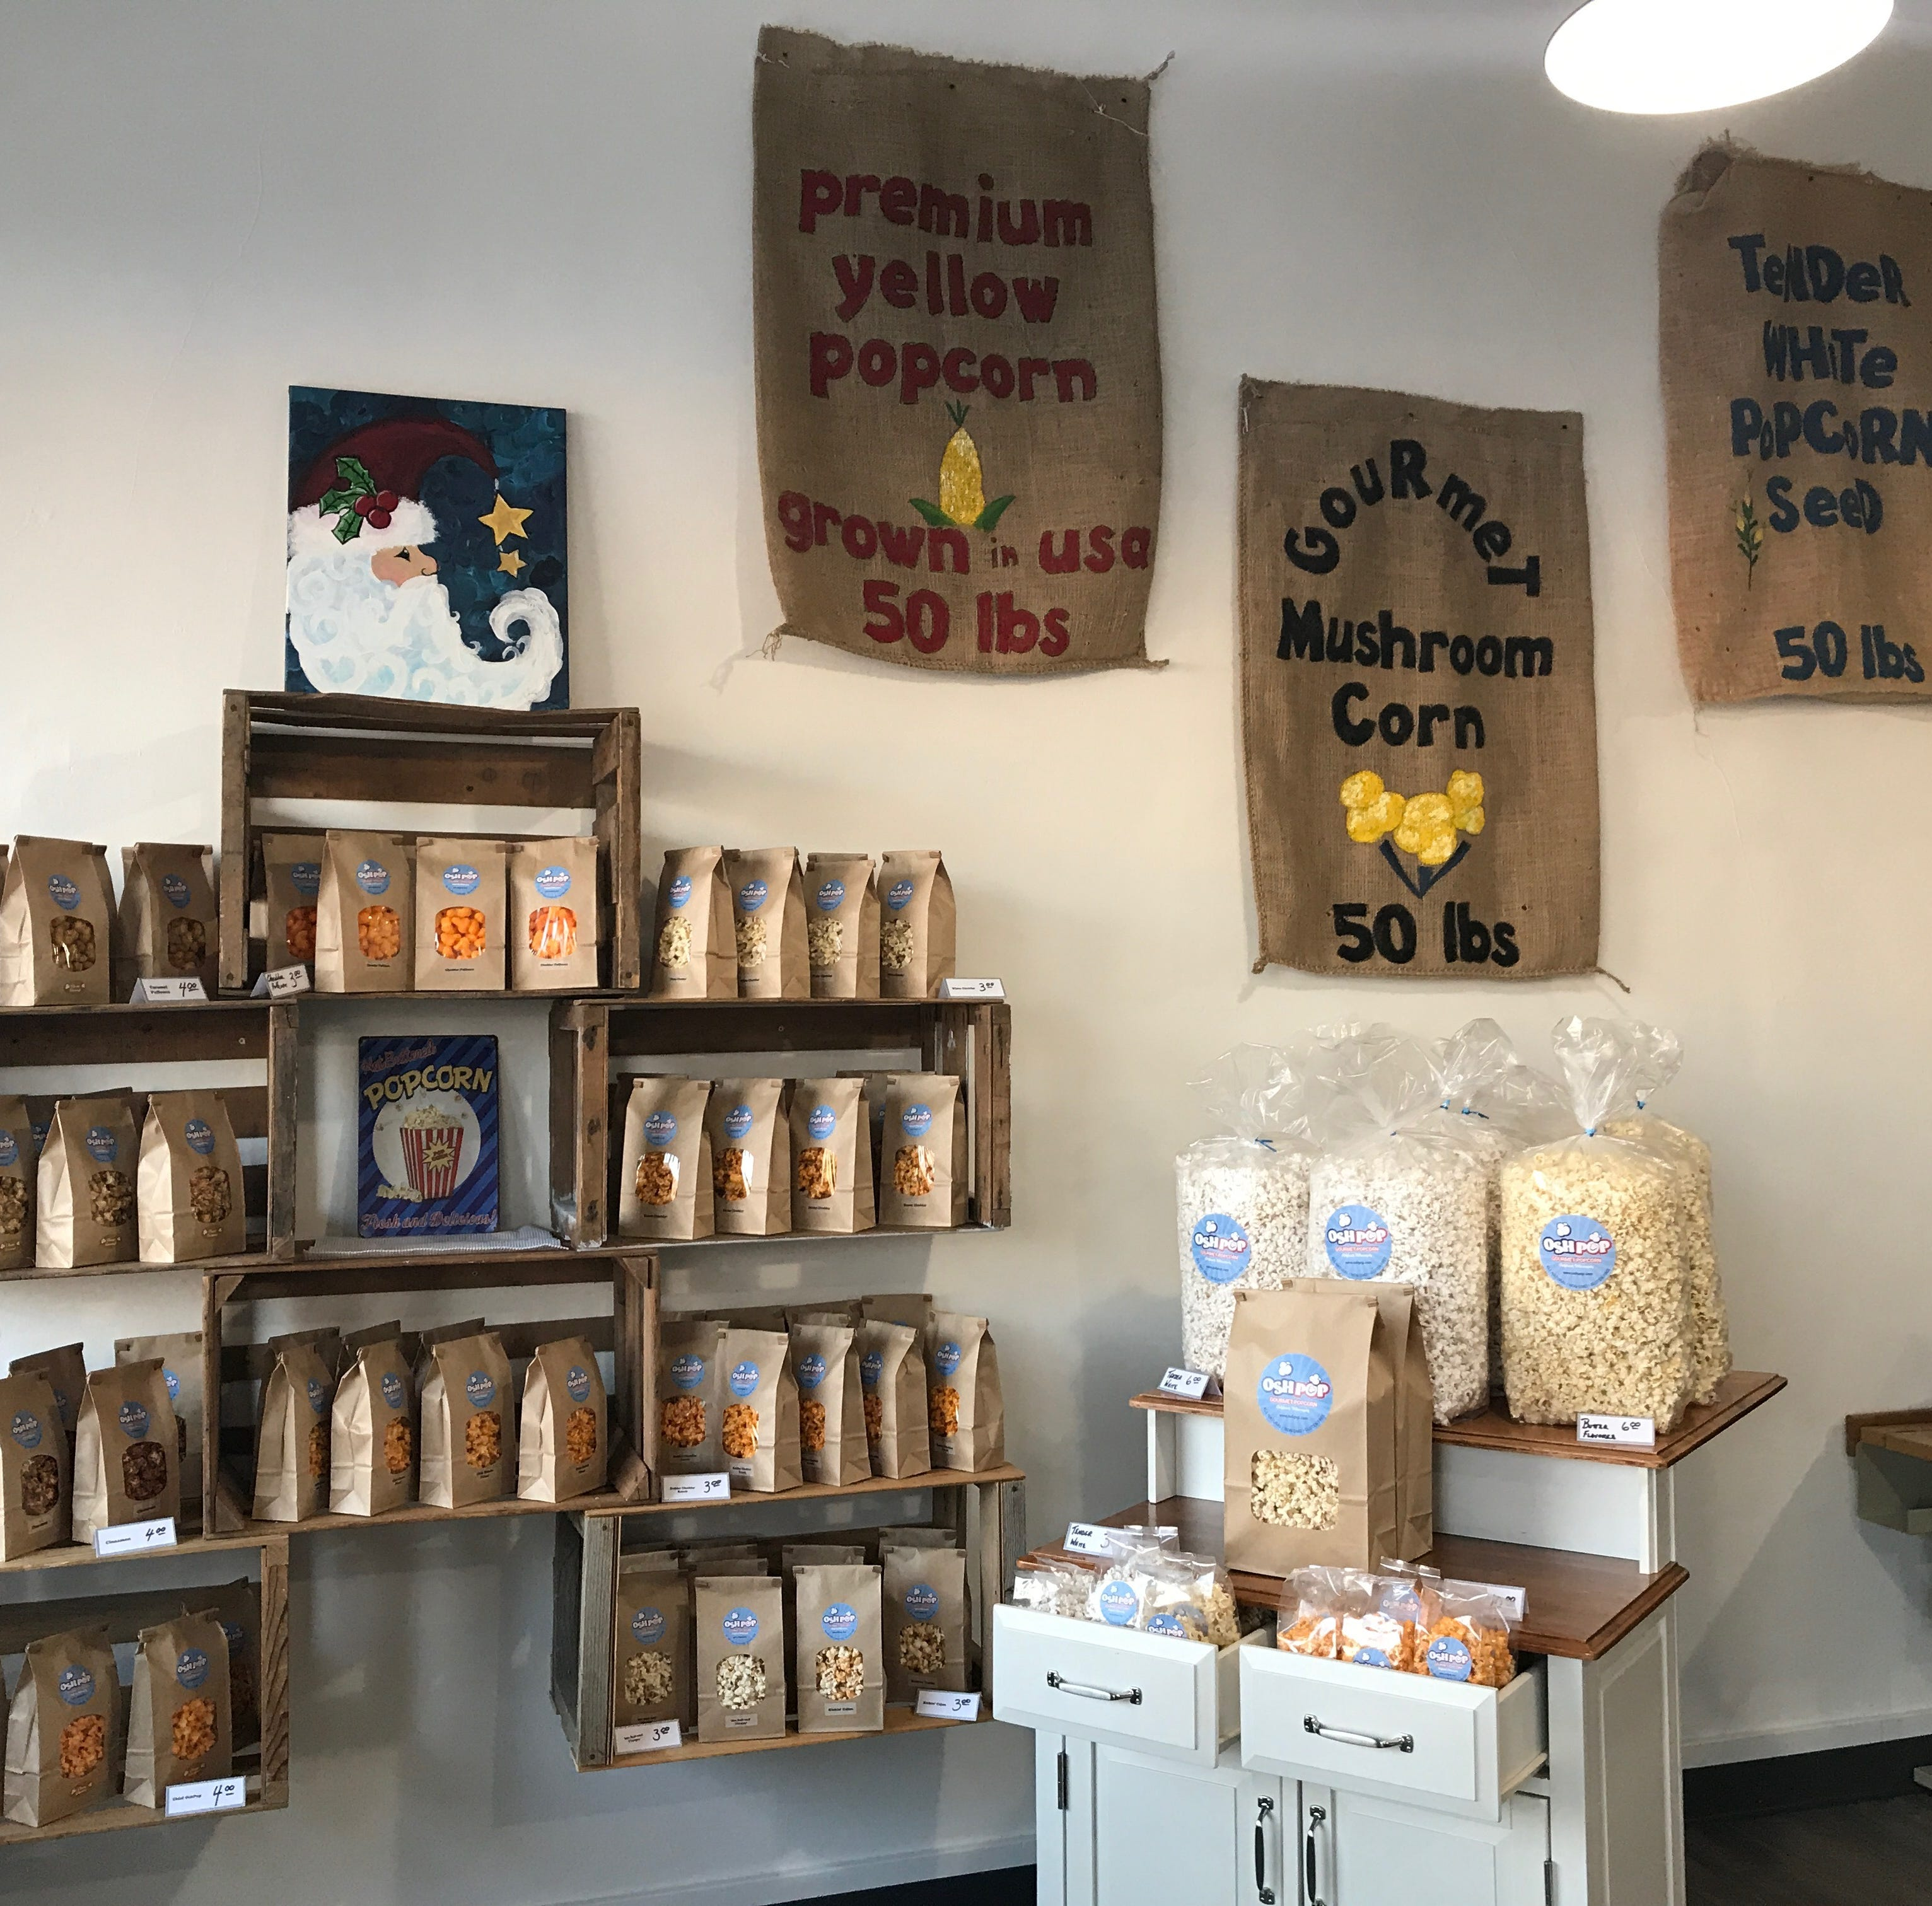 From jalapeno to cheddar caramel: OshPop brings fresh flavors to Oshkosh |Streetwise